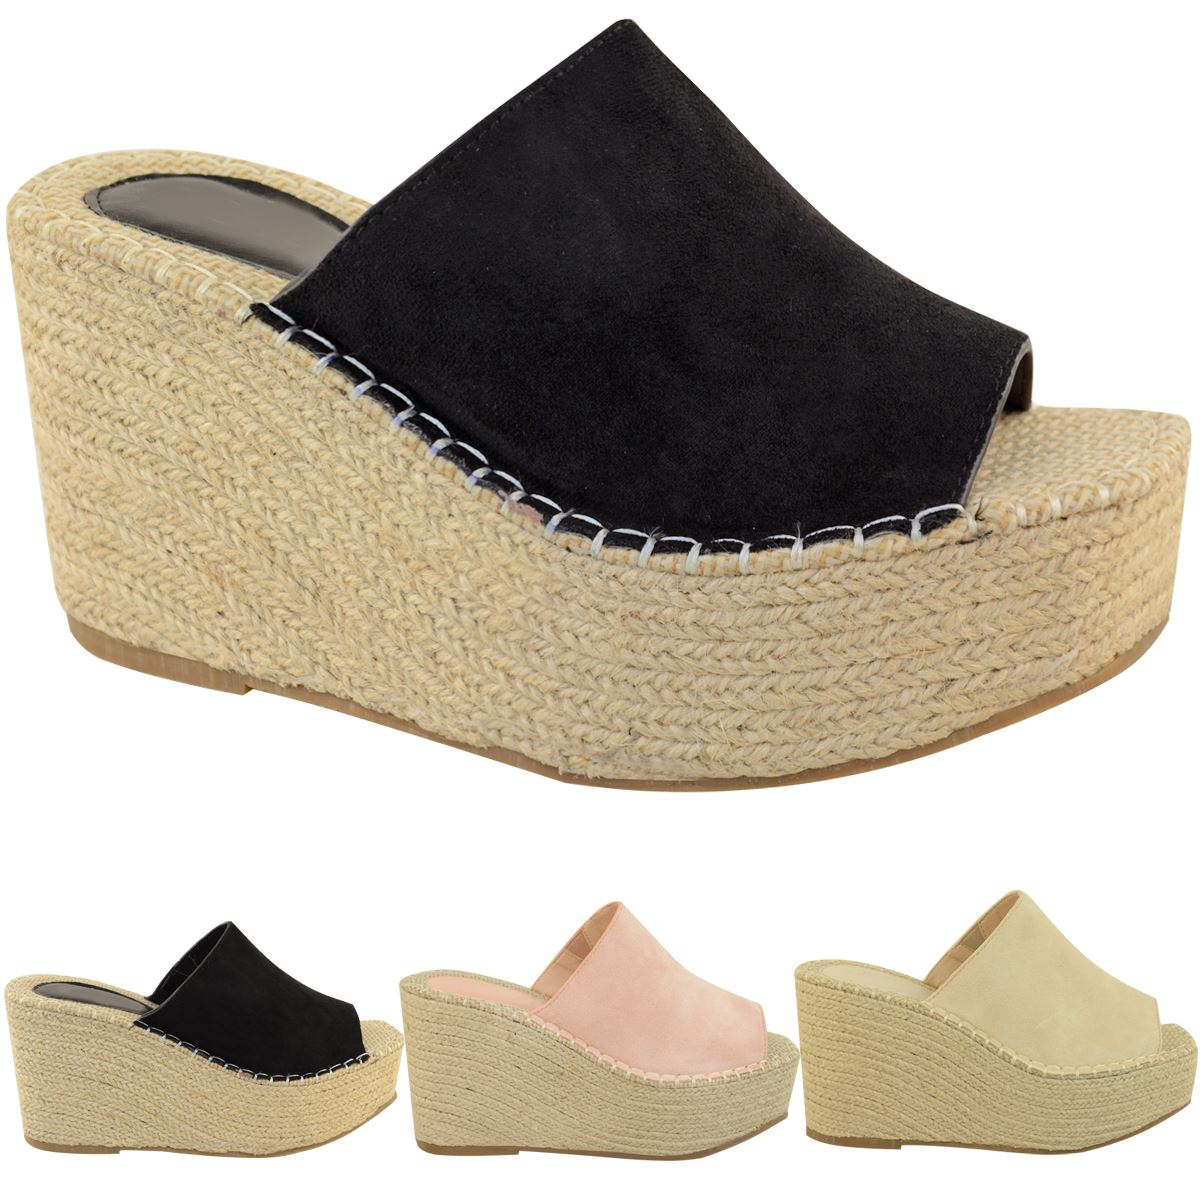 Womens Platform Sandals High Espadrille Wedge Mule Summer Comfort Raffia Slip On